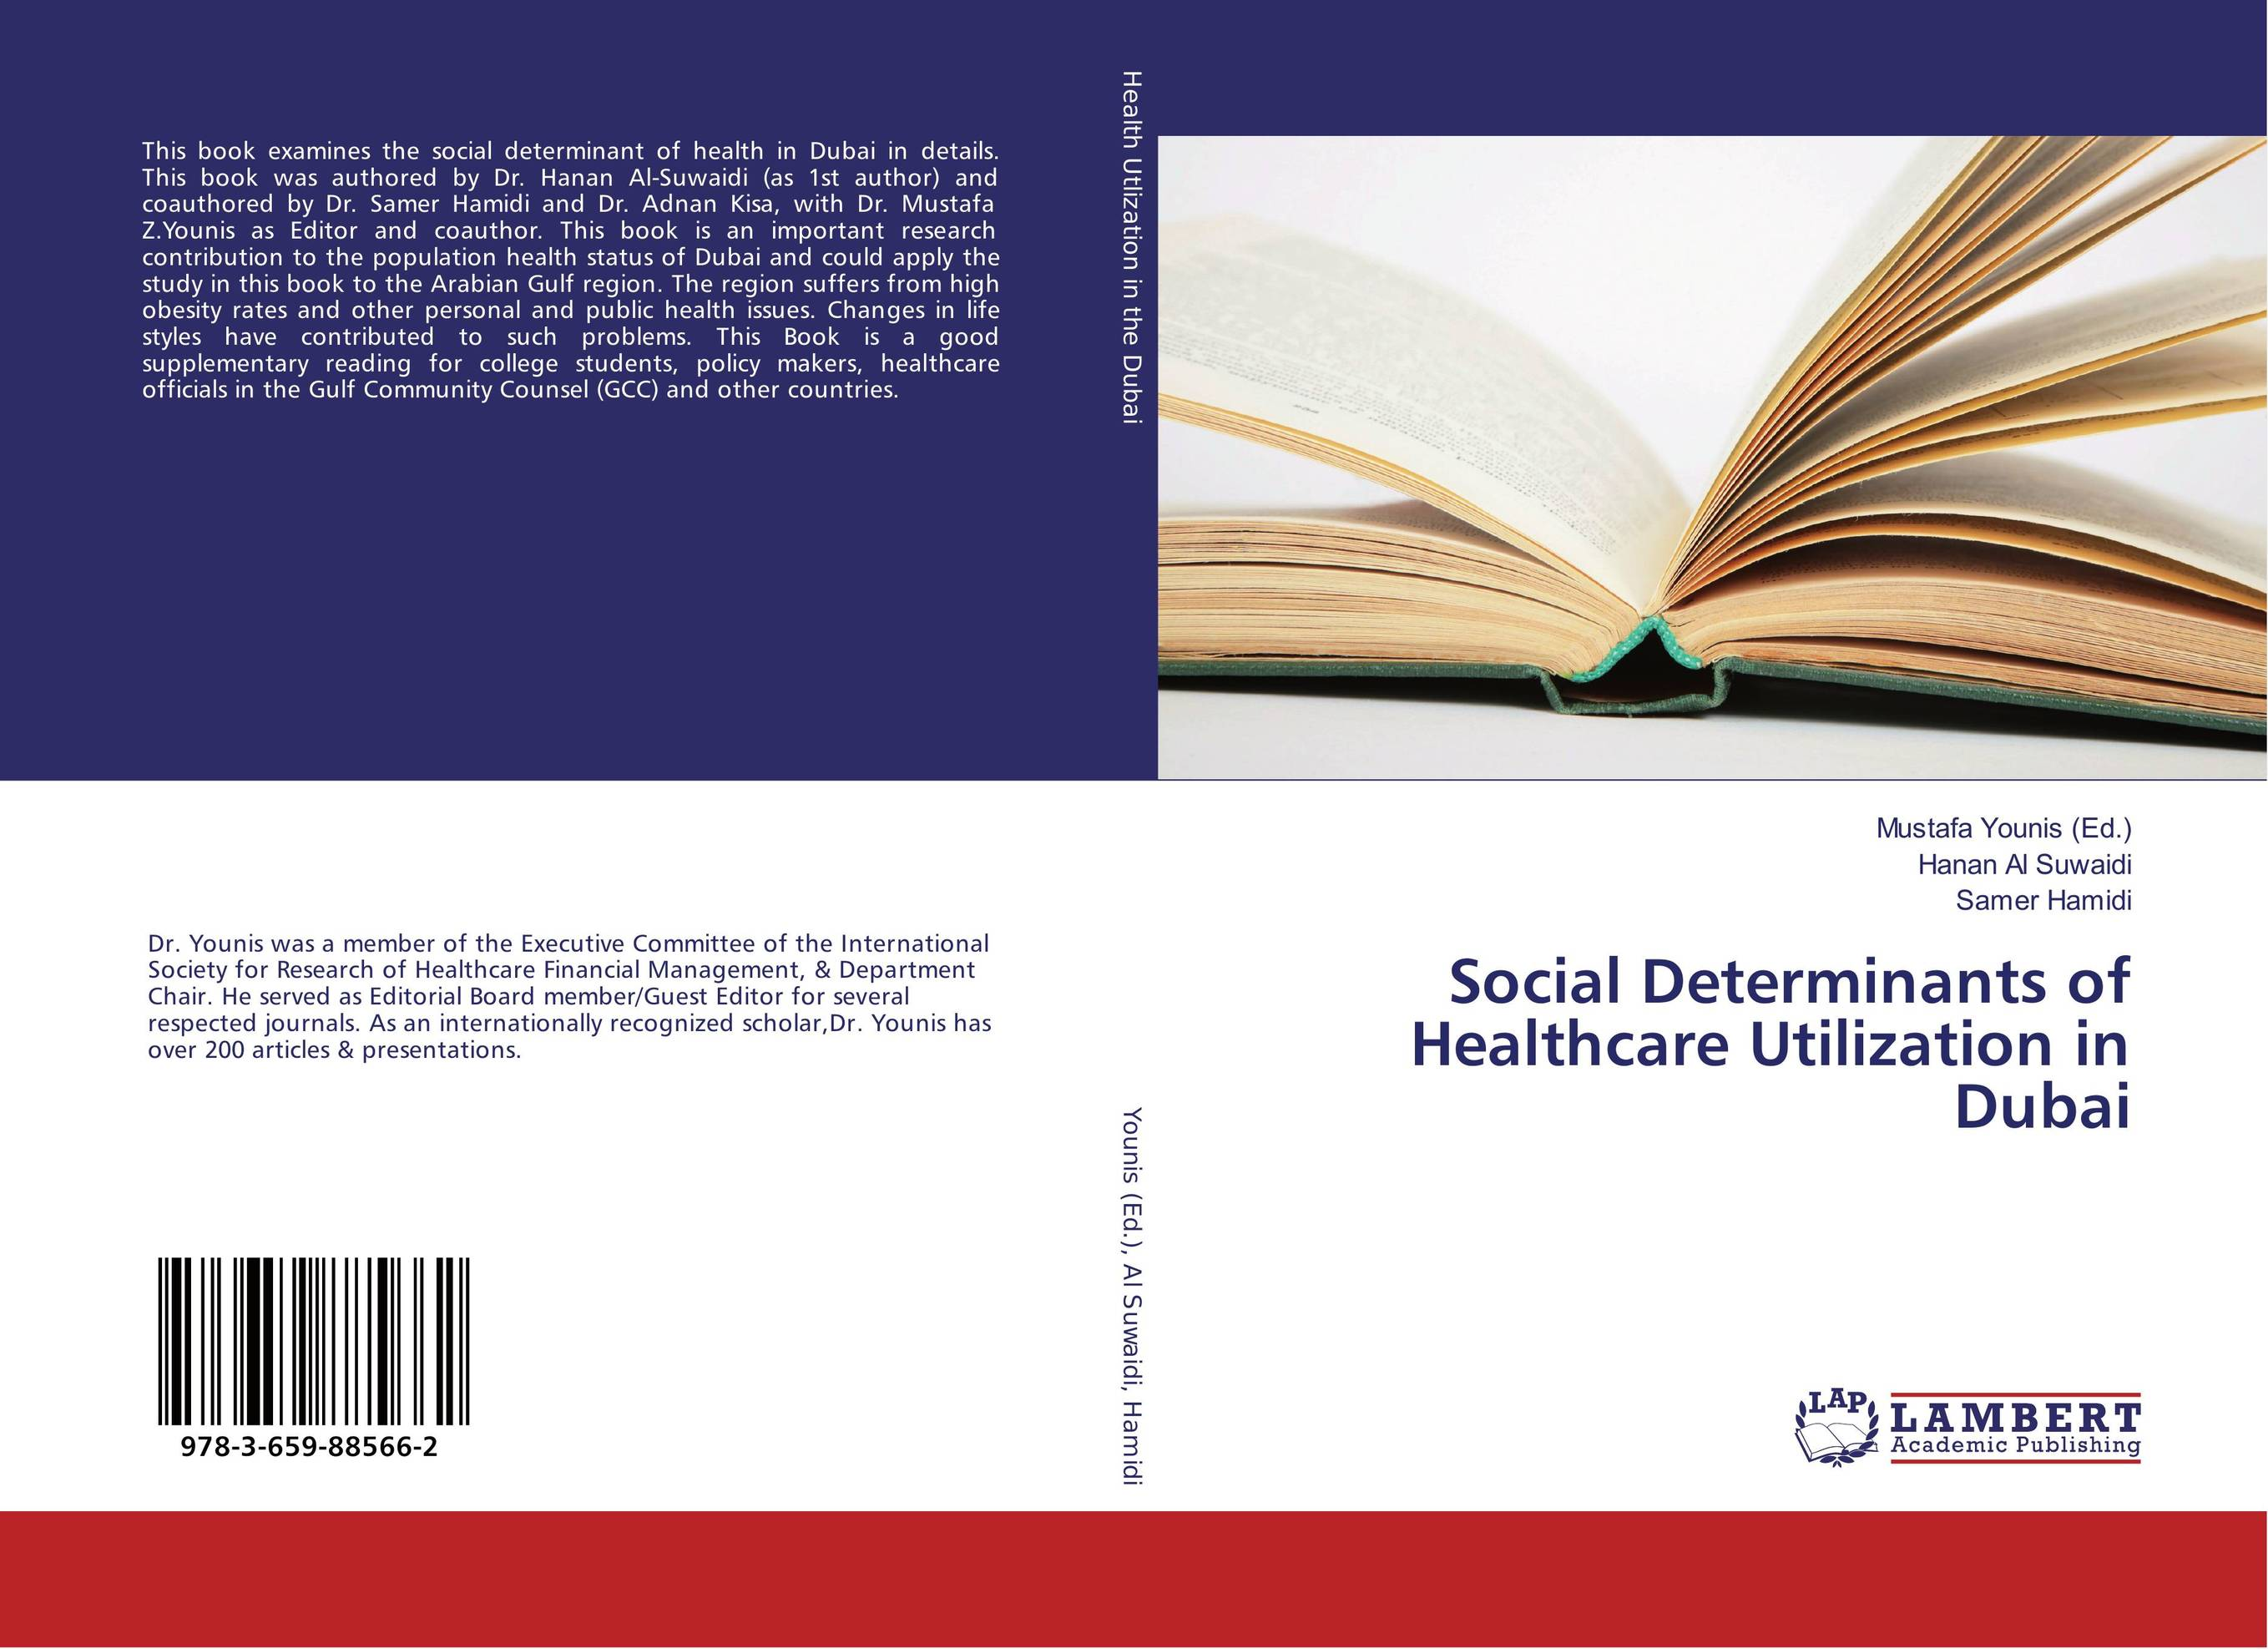 Social Determinants of Healthcare Utilization in Dubai promoting social change in the arab gulf